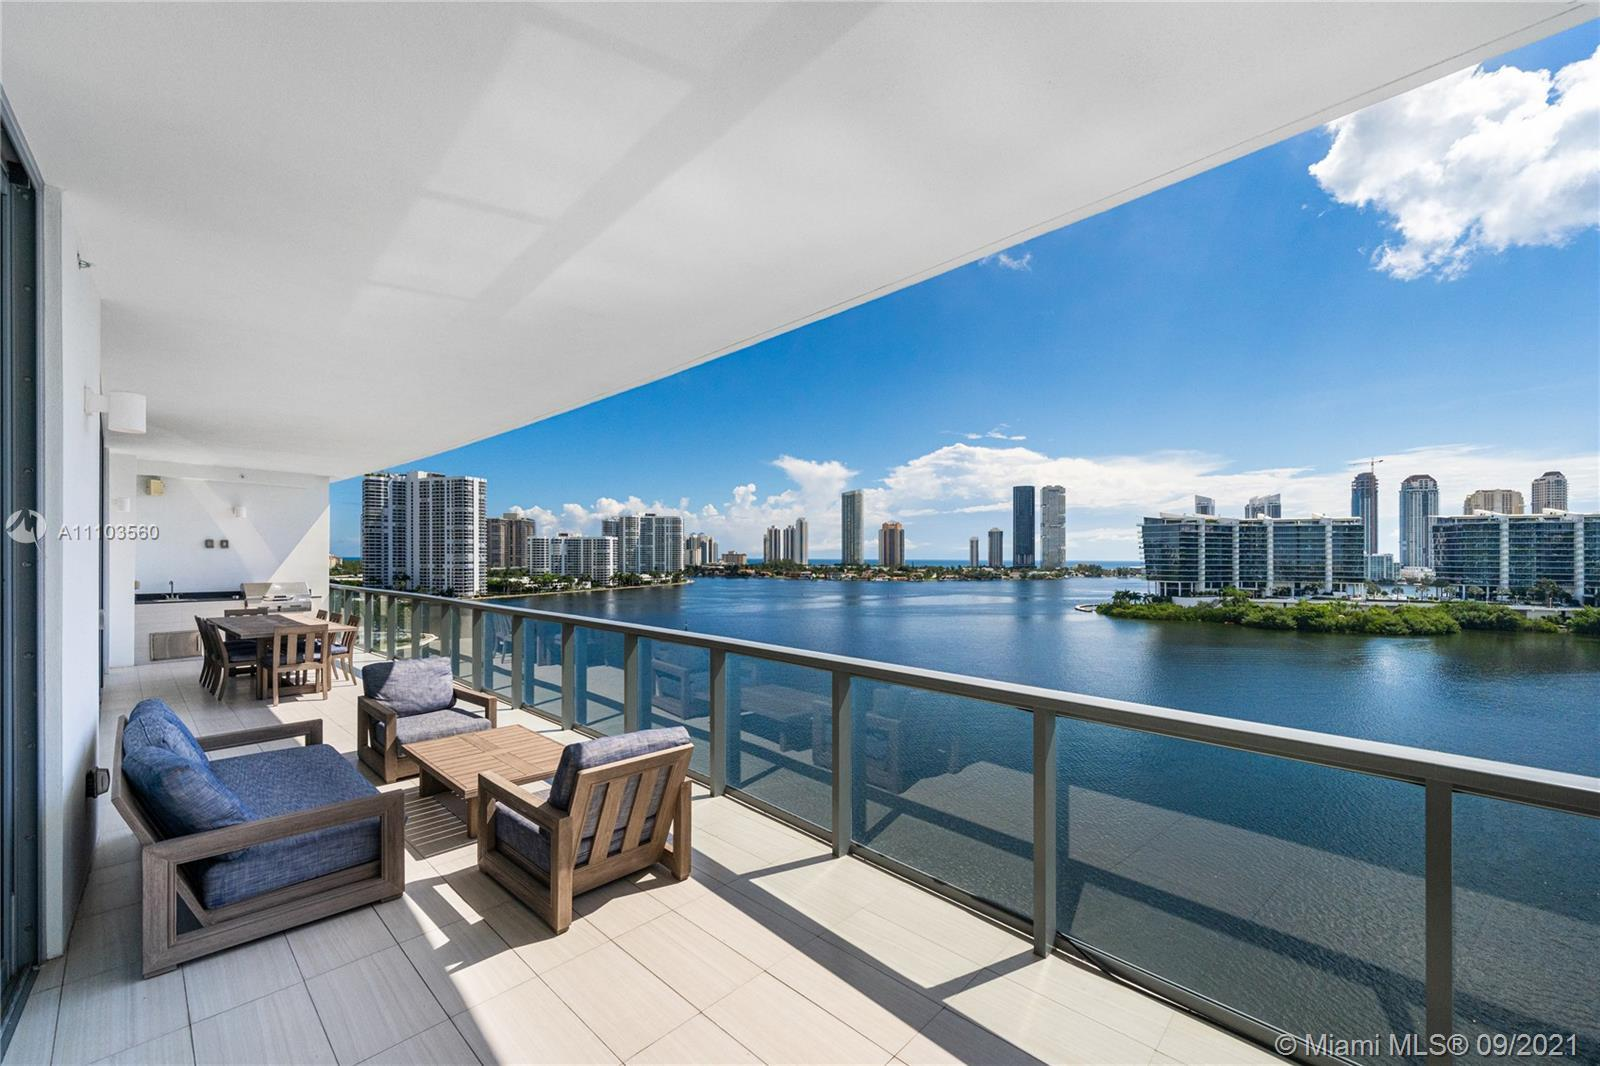 Spectacular Turnkey Residence at the Exclusive Echo Aventura! This 3 Bedroom / 4.5 Bathroom + Den +